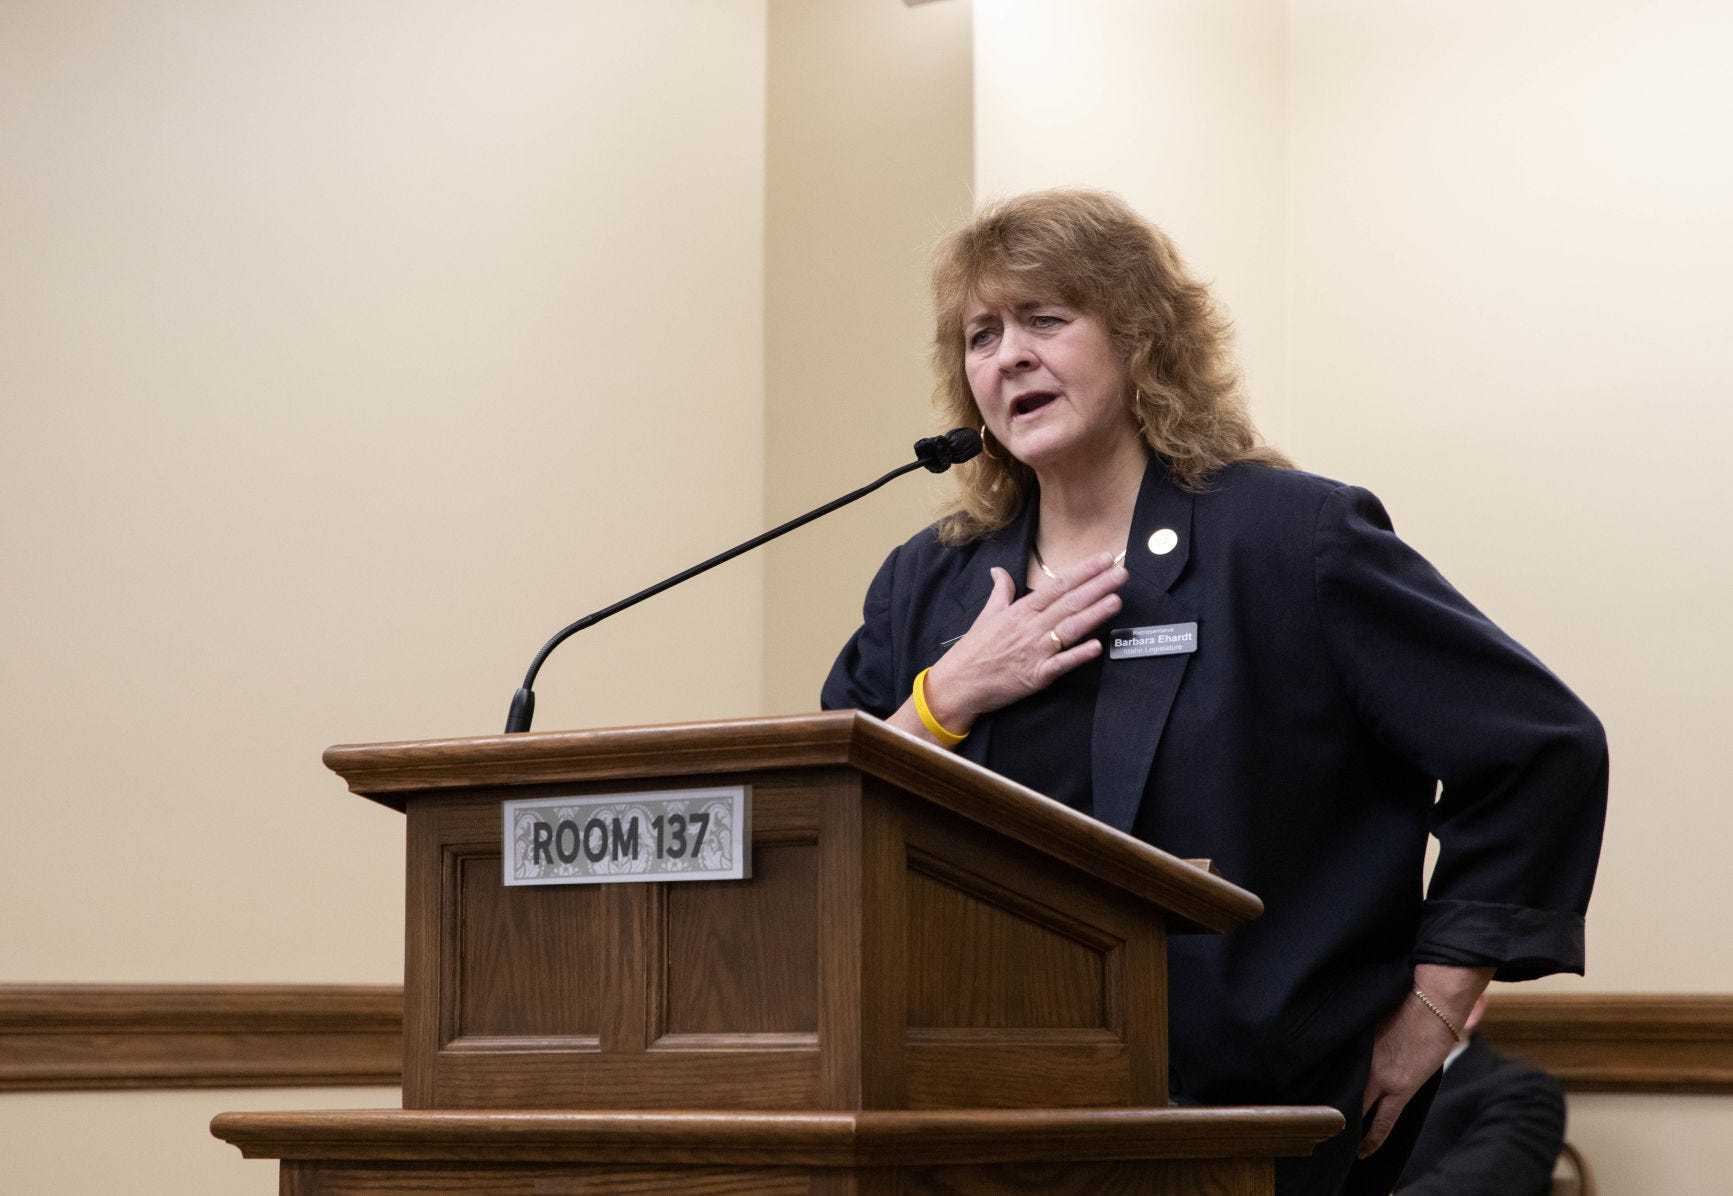 Idaho State Rep. Barbara Ehardt, R-Idaho Falls, testifies in January in support of a Montana bill that would ban transgender women and girls from competing in high school and college women's sports. The bill was very similar to Ehardt's own bill, drafted by the Alliance Defending Freedom, which was signed into law in Idaho last year and is currently embroiled in legal battles at the federal level.